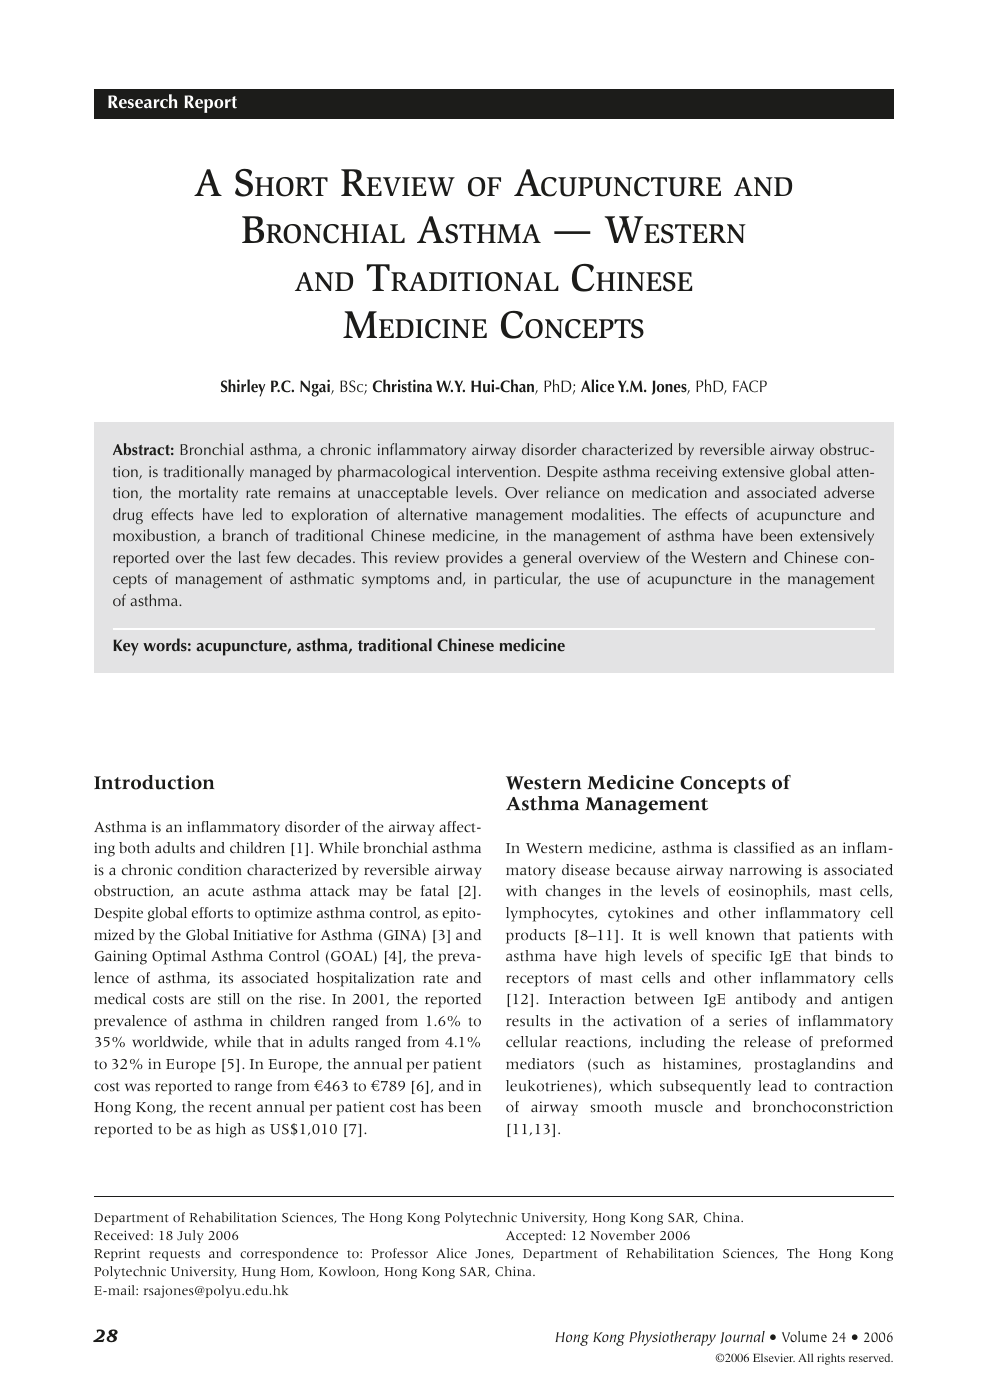 A Short Review of Acupuncture and Bronchial Asthma — Western and